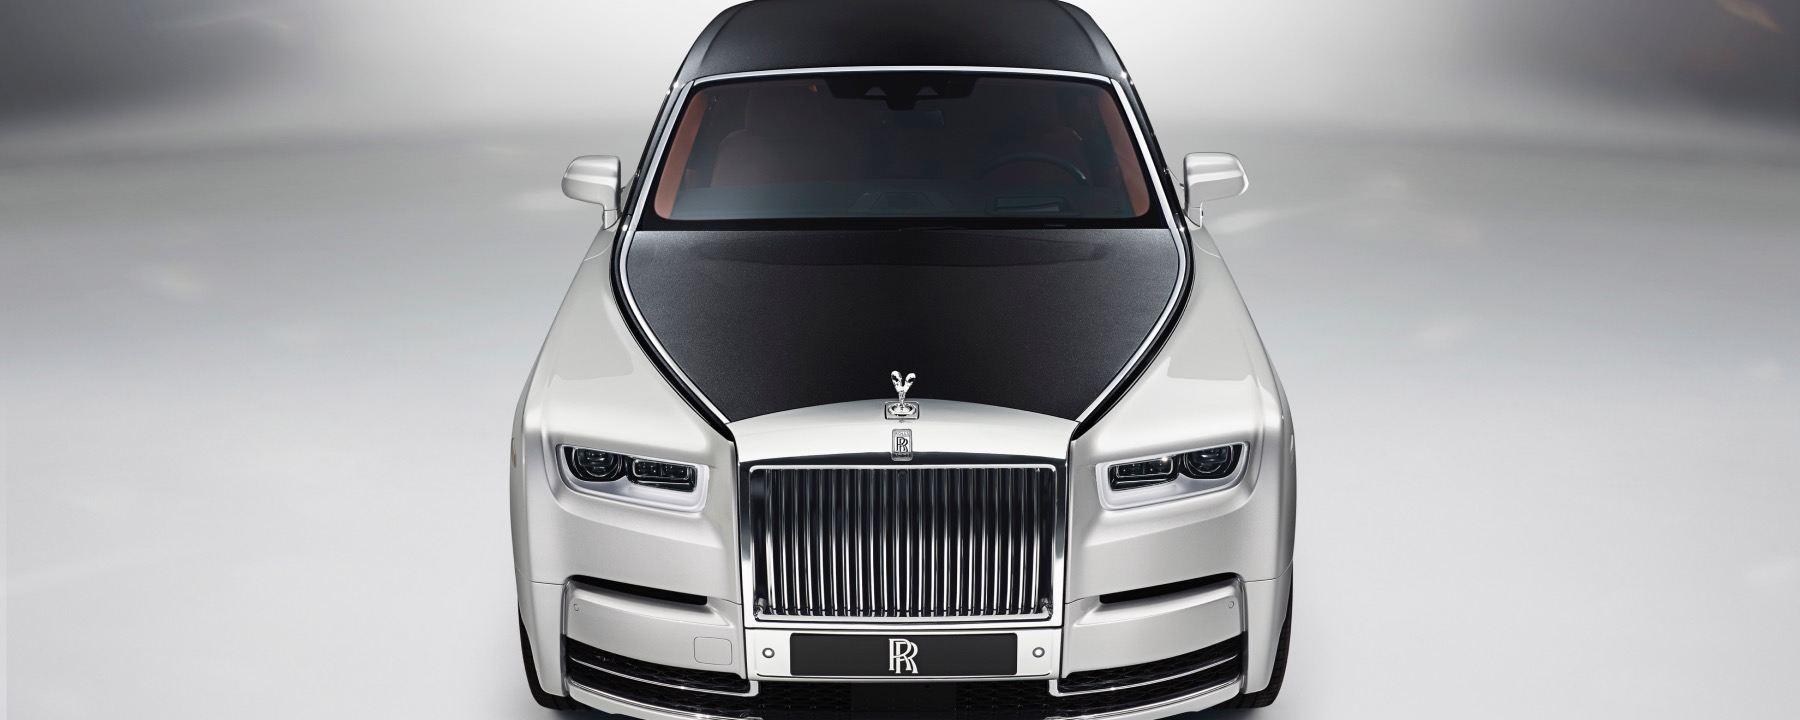 Top Gear Magazine Names Rolls Royce Phantom Luxury Car Of The Year